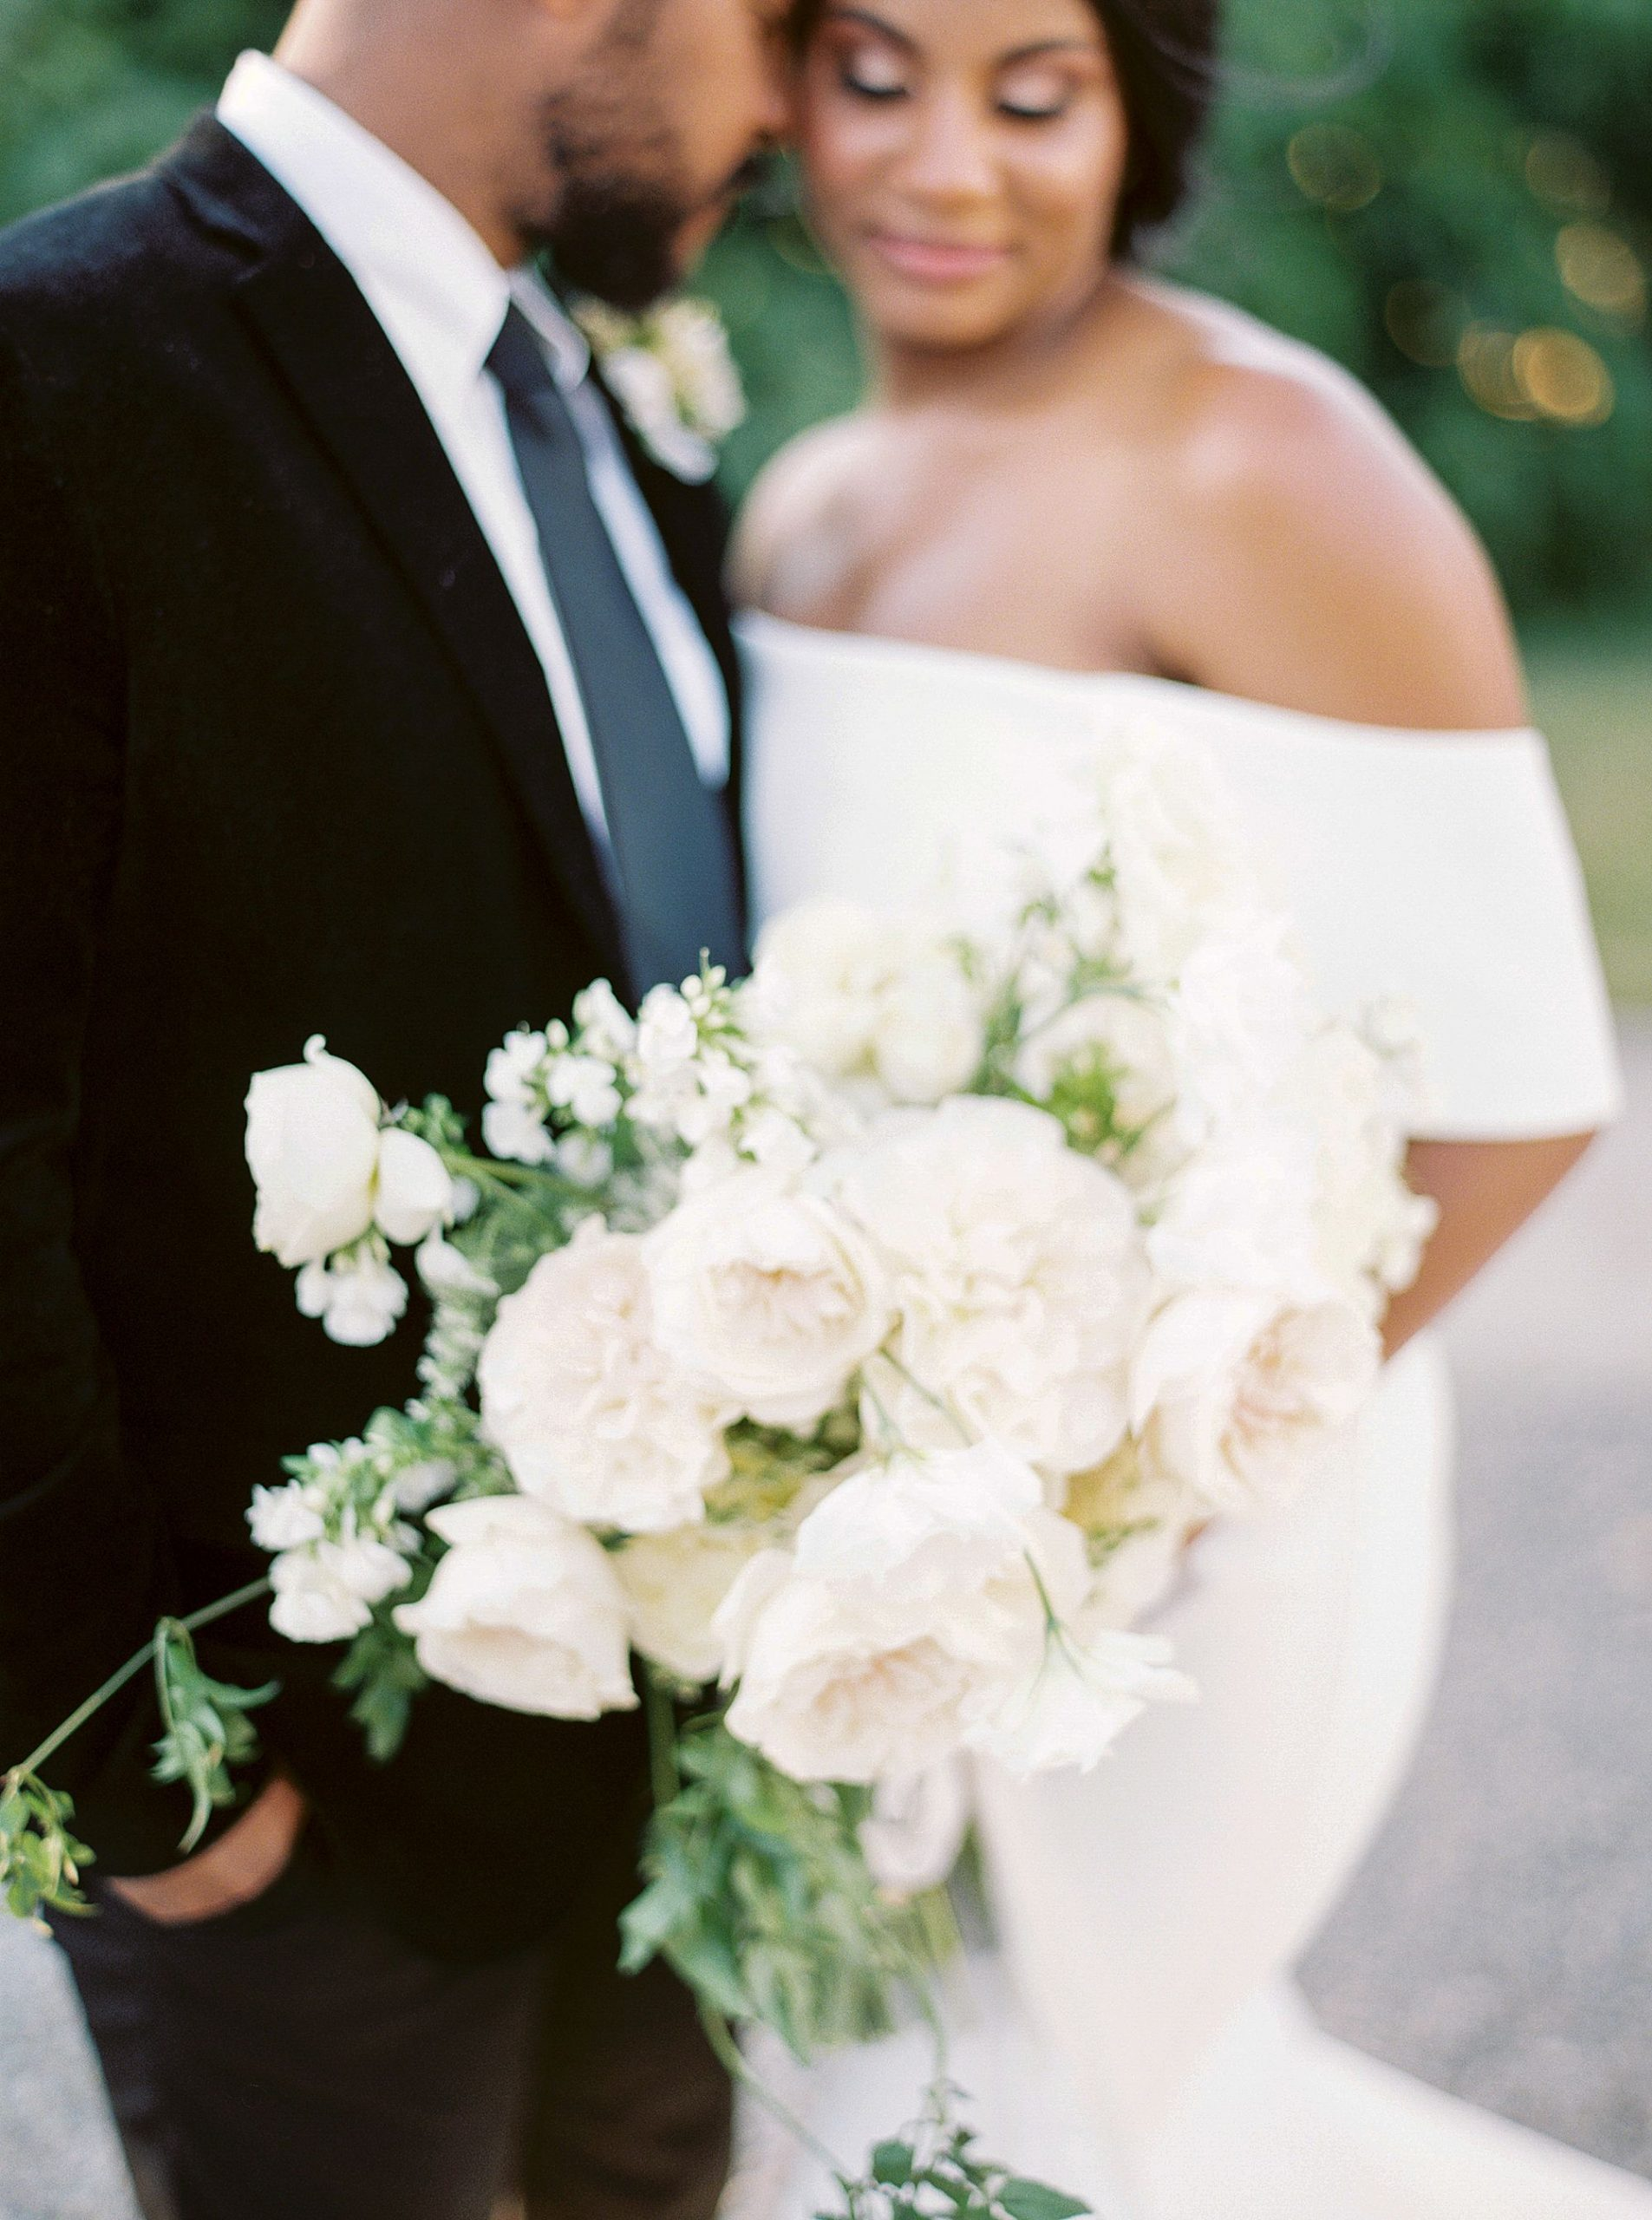 Park Winters Micro-Wedding Inspiration on Style Me Pretty - Stephanie Teague Events - Ashley Baumgartner - Park Winters Wedding - Black Tie Wedding - Micro-Wedding Sacramento Photographer_0020.jpg